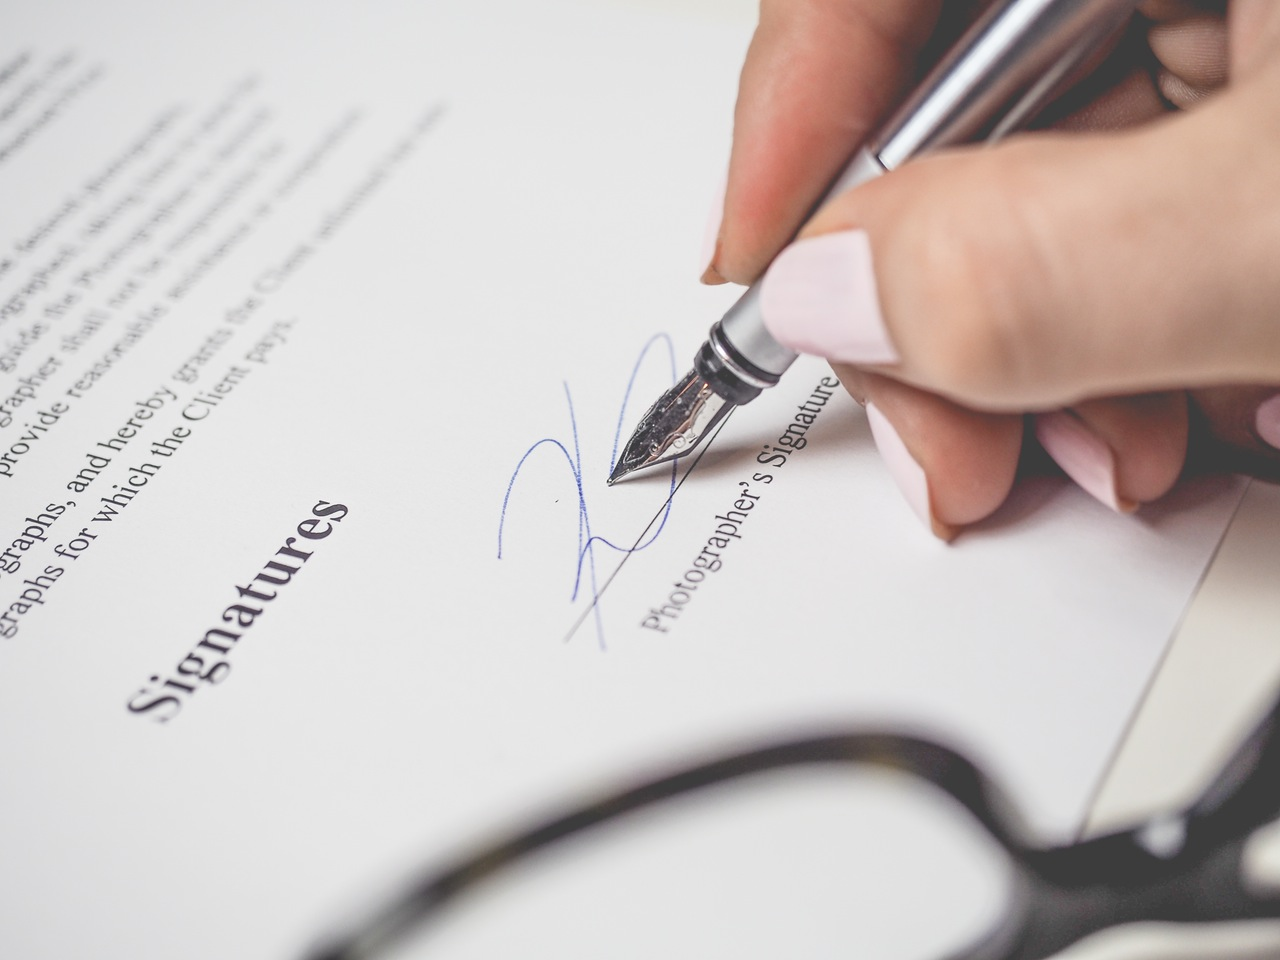 Did you know document signing doesn't have to be a hassle? Learn about signing documents online